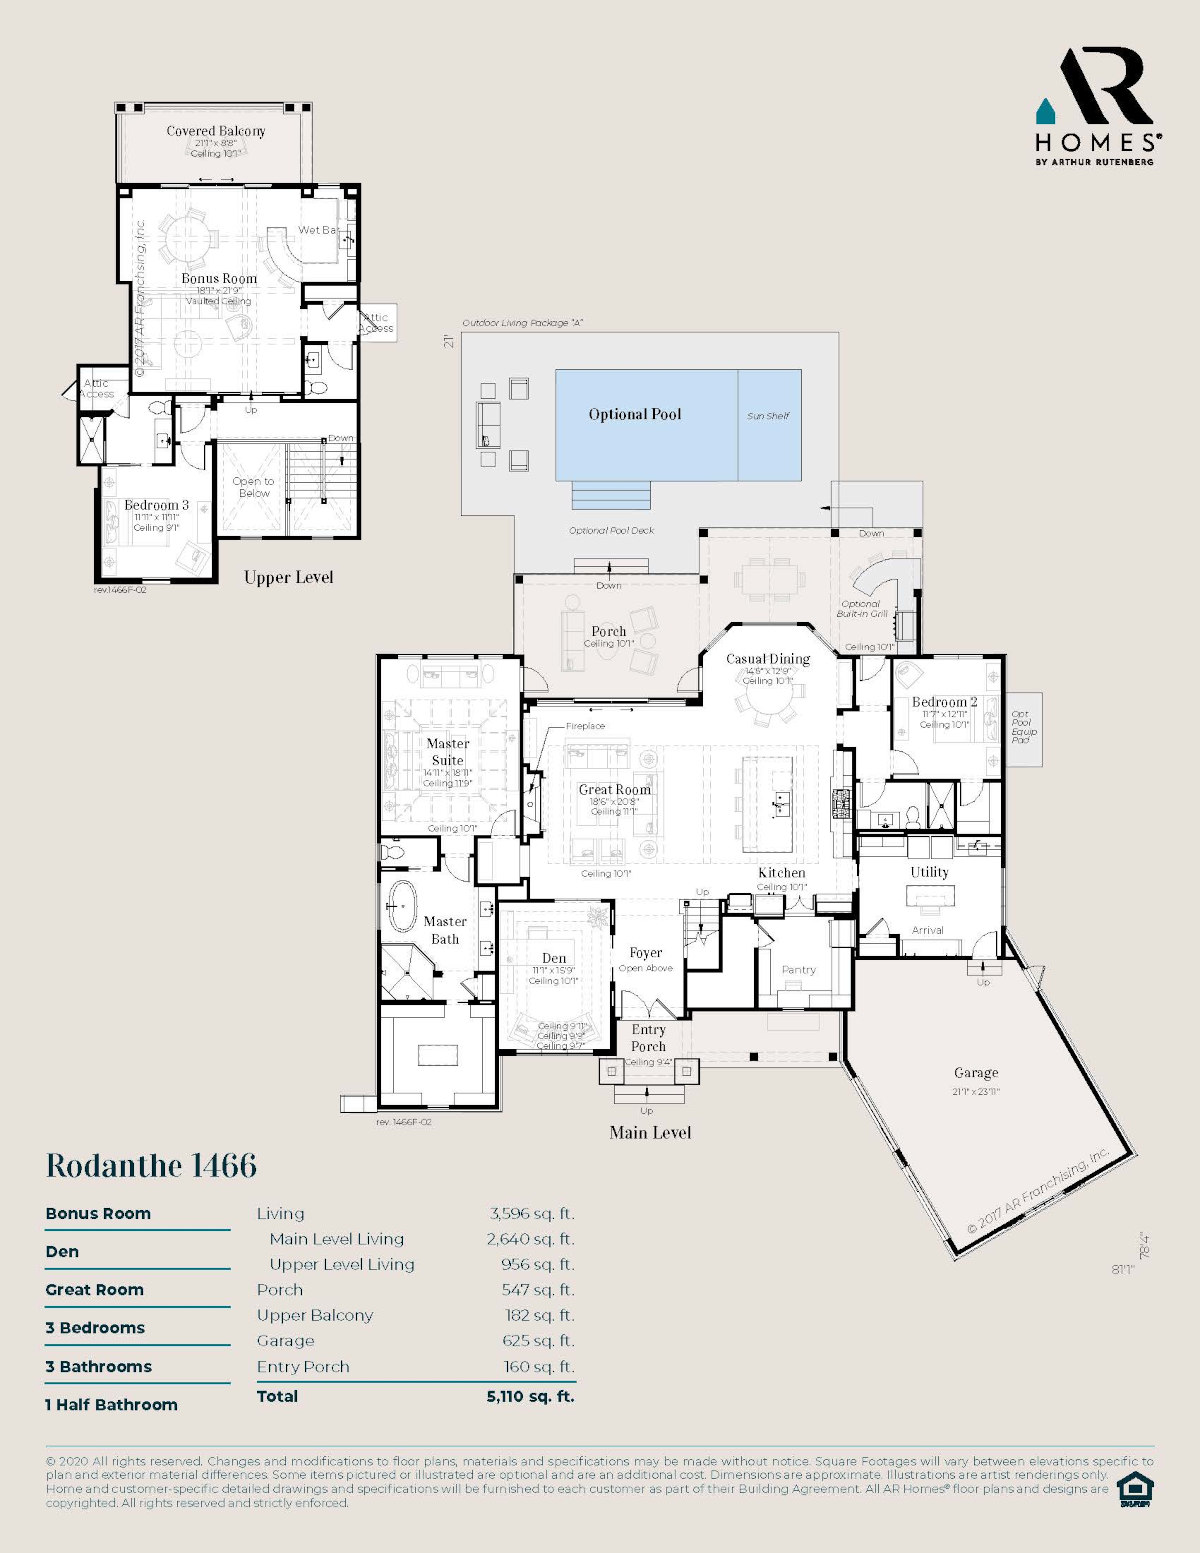 Rodanthe 1466 Floor Plan